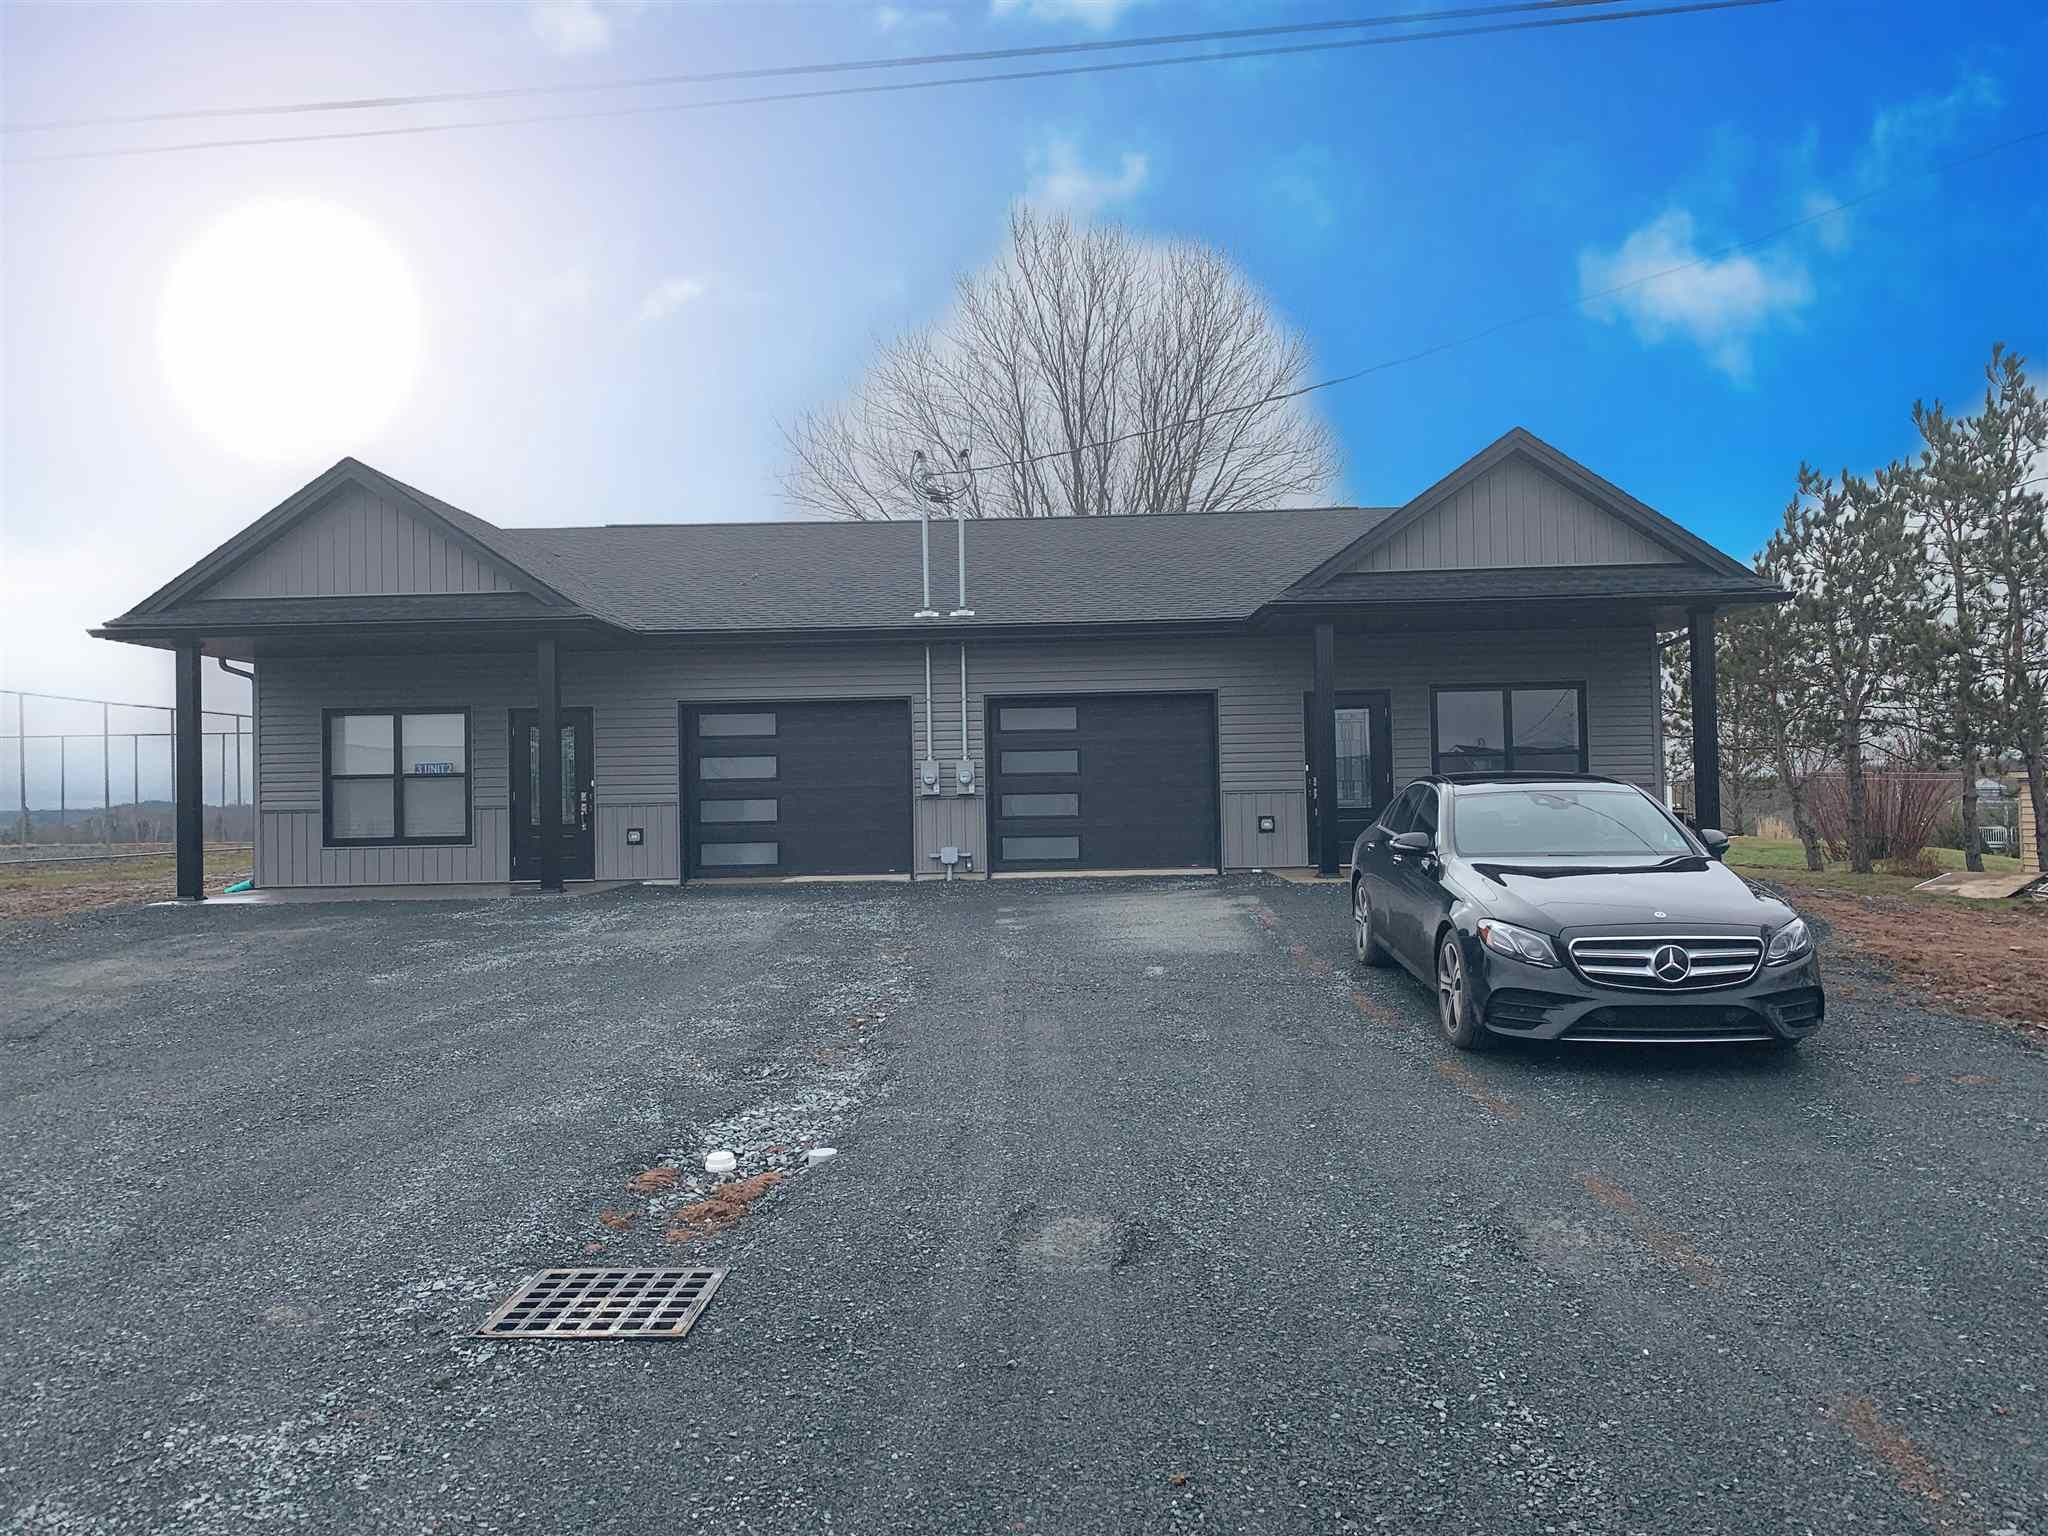 Main Photo: 1 3 Second Street in Shubenacadie: 105-East Hants/Colchester West Residential for sale (Halifax-Dartmouth)  : MLS®# 202101997